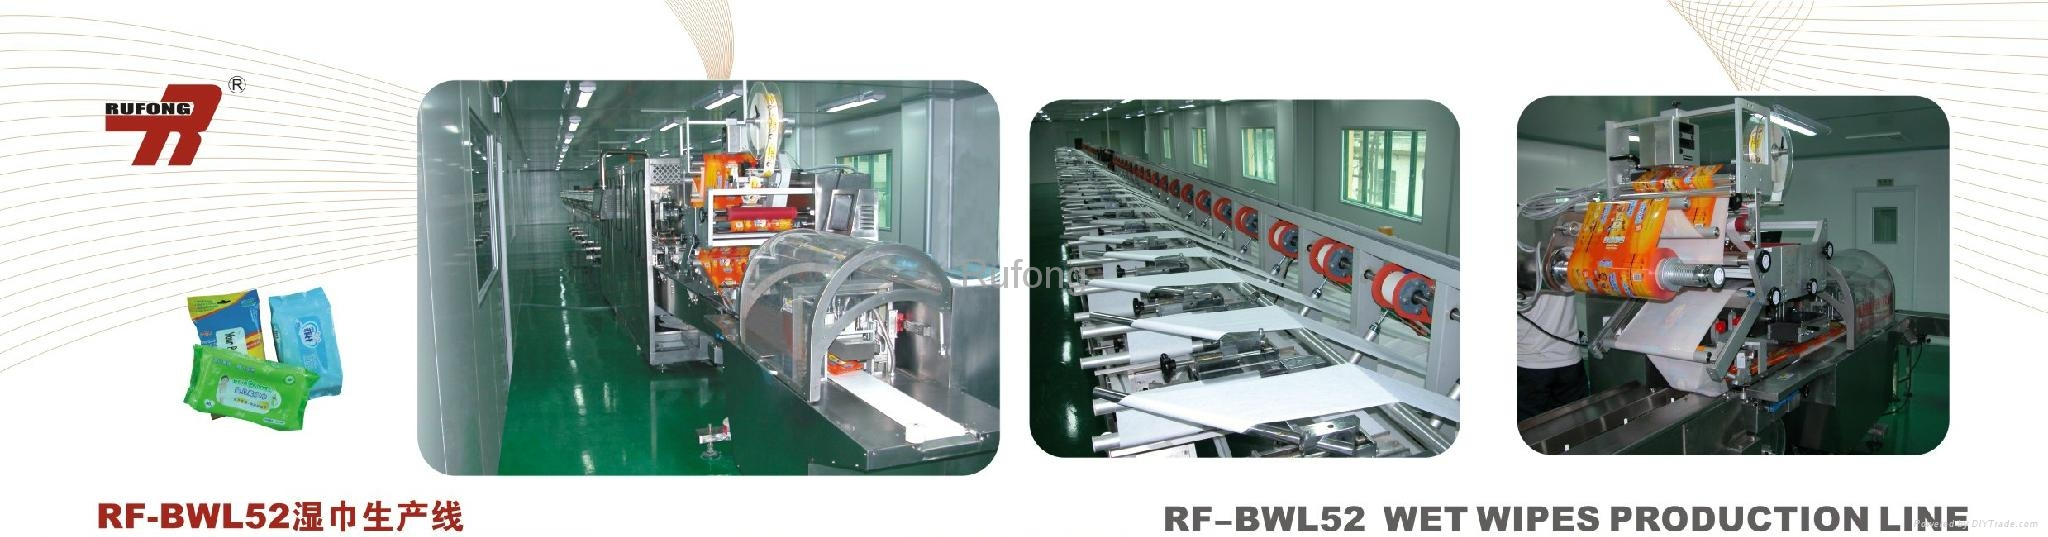 RF-BWL52 Wet Wipes Production Line 1